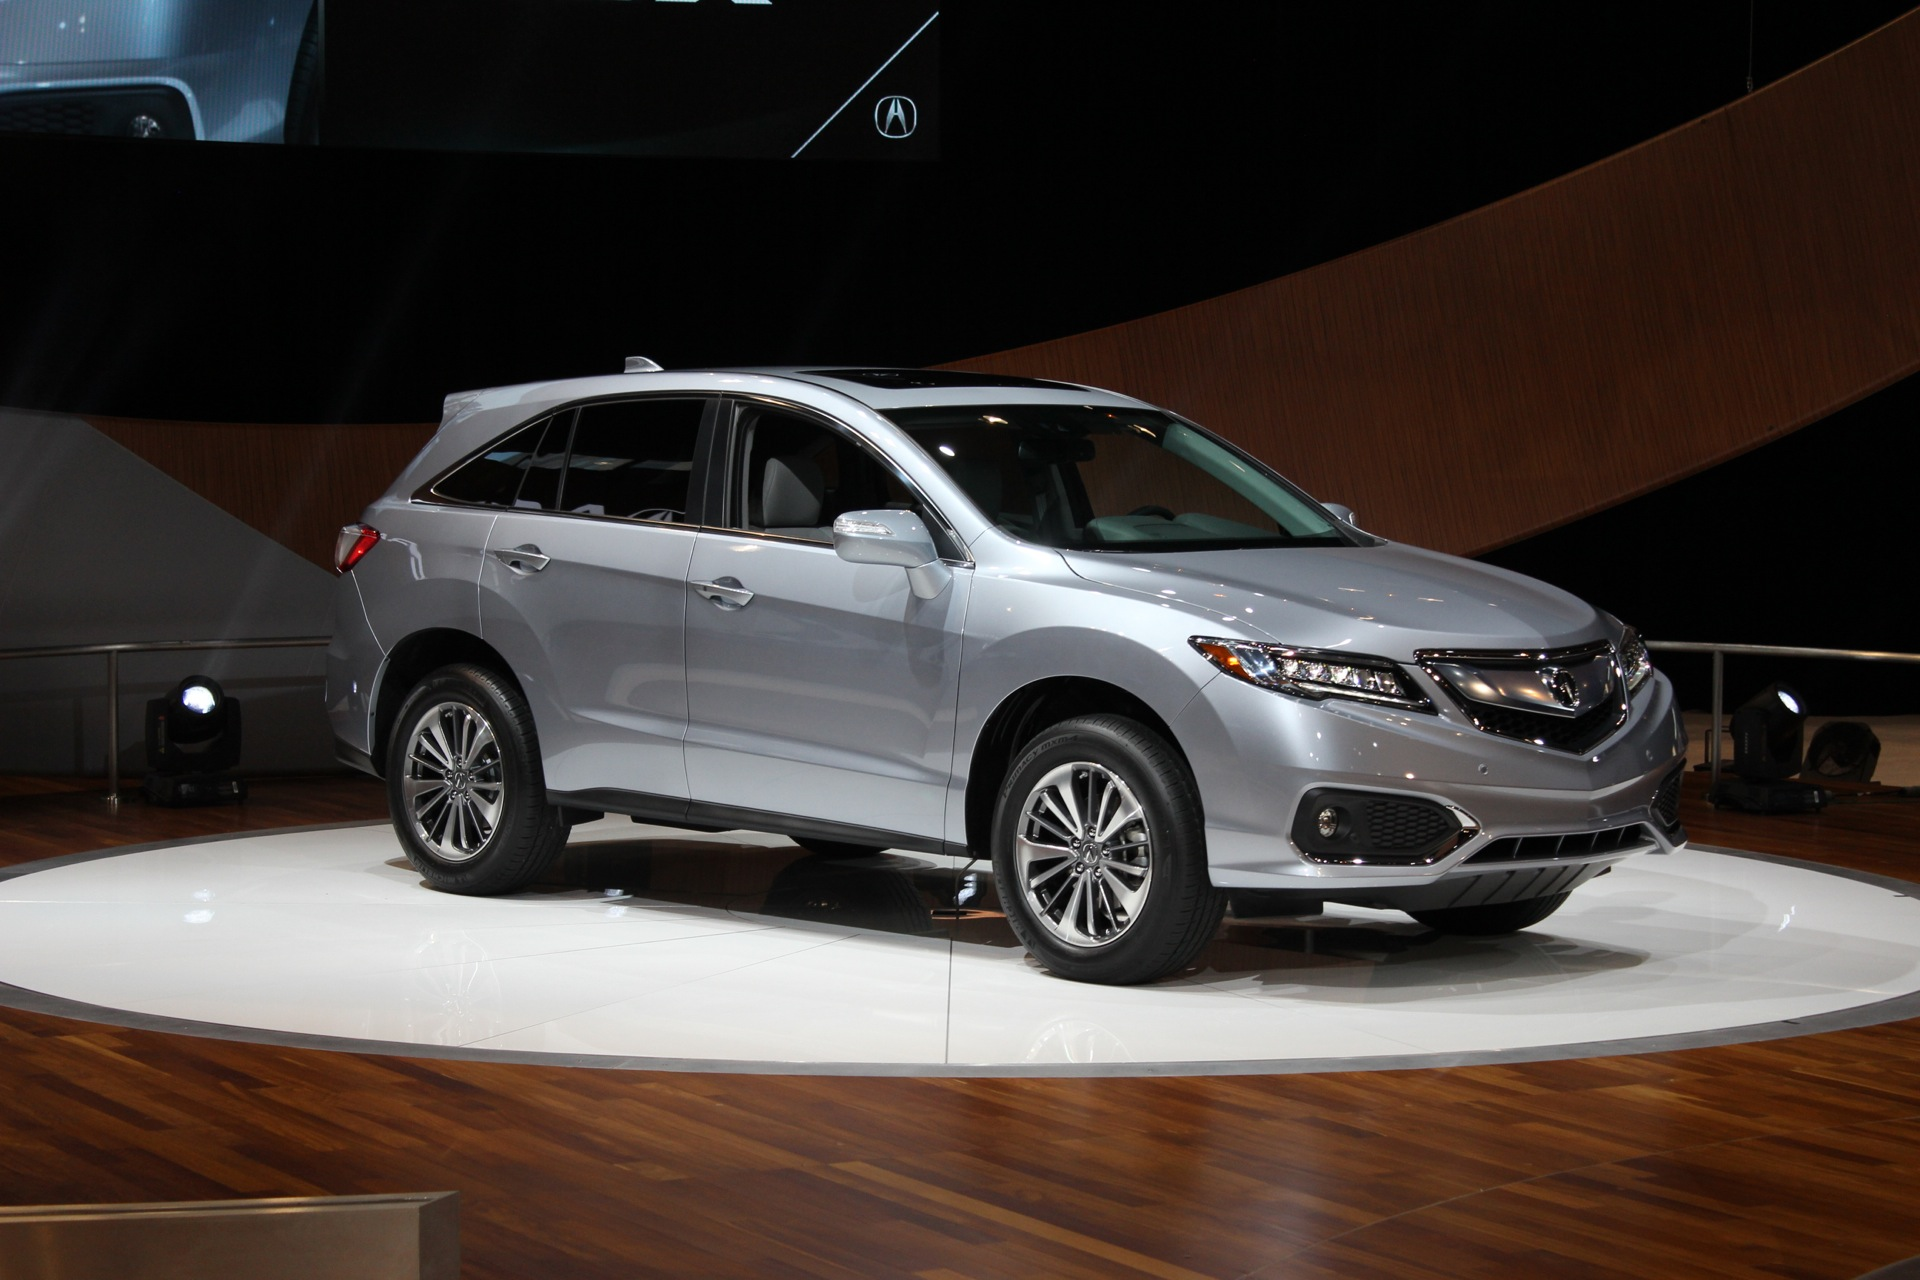 and drive review rdx article workmans suv w hot car advance crossover seller acura package price reviews gallery photo